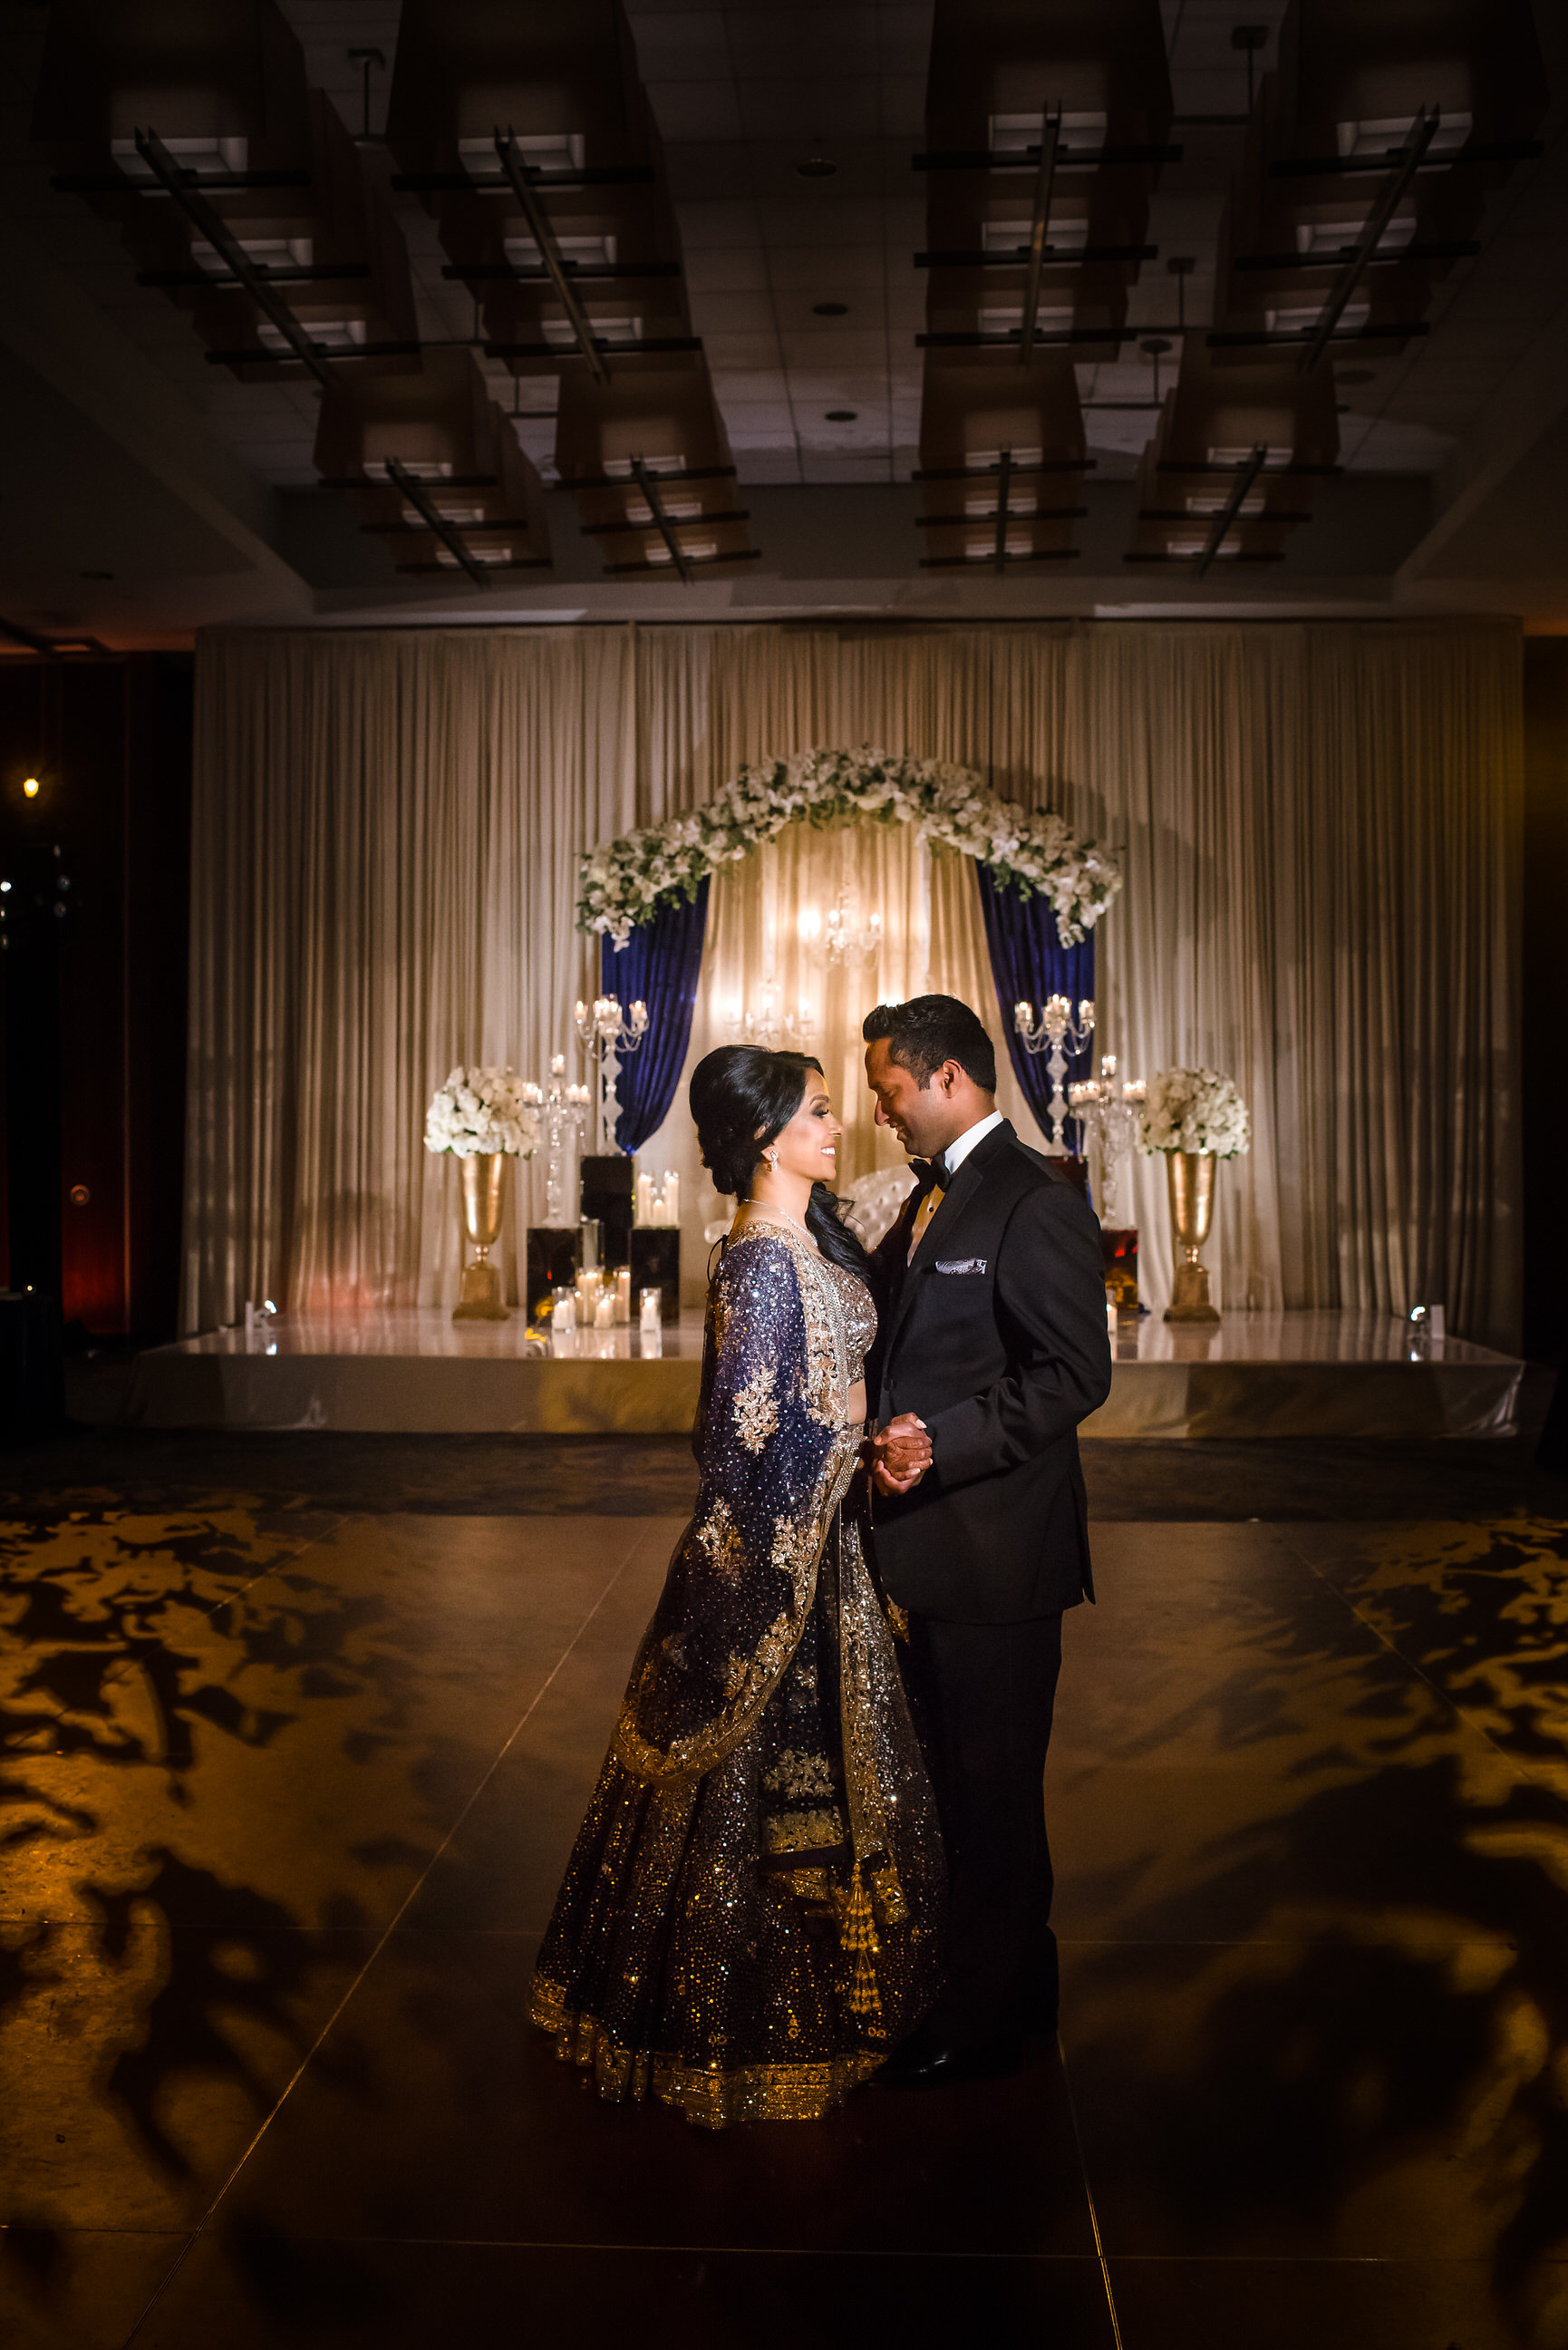 INDIAN WEDDING COUPLE BACKDROP RECEPTION.jpg